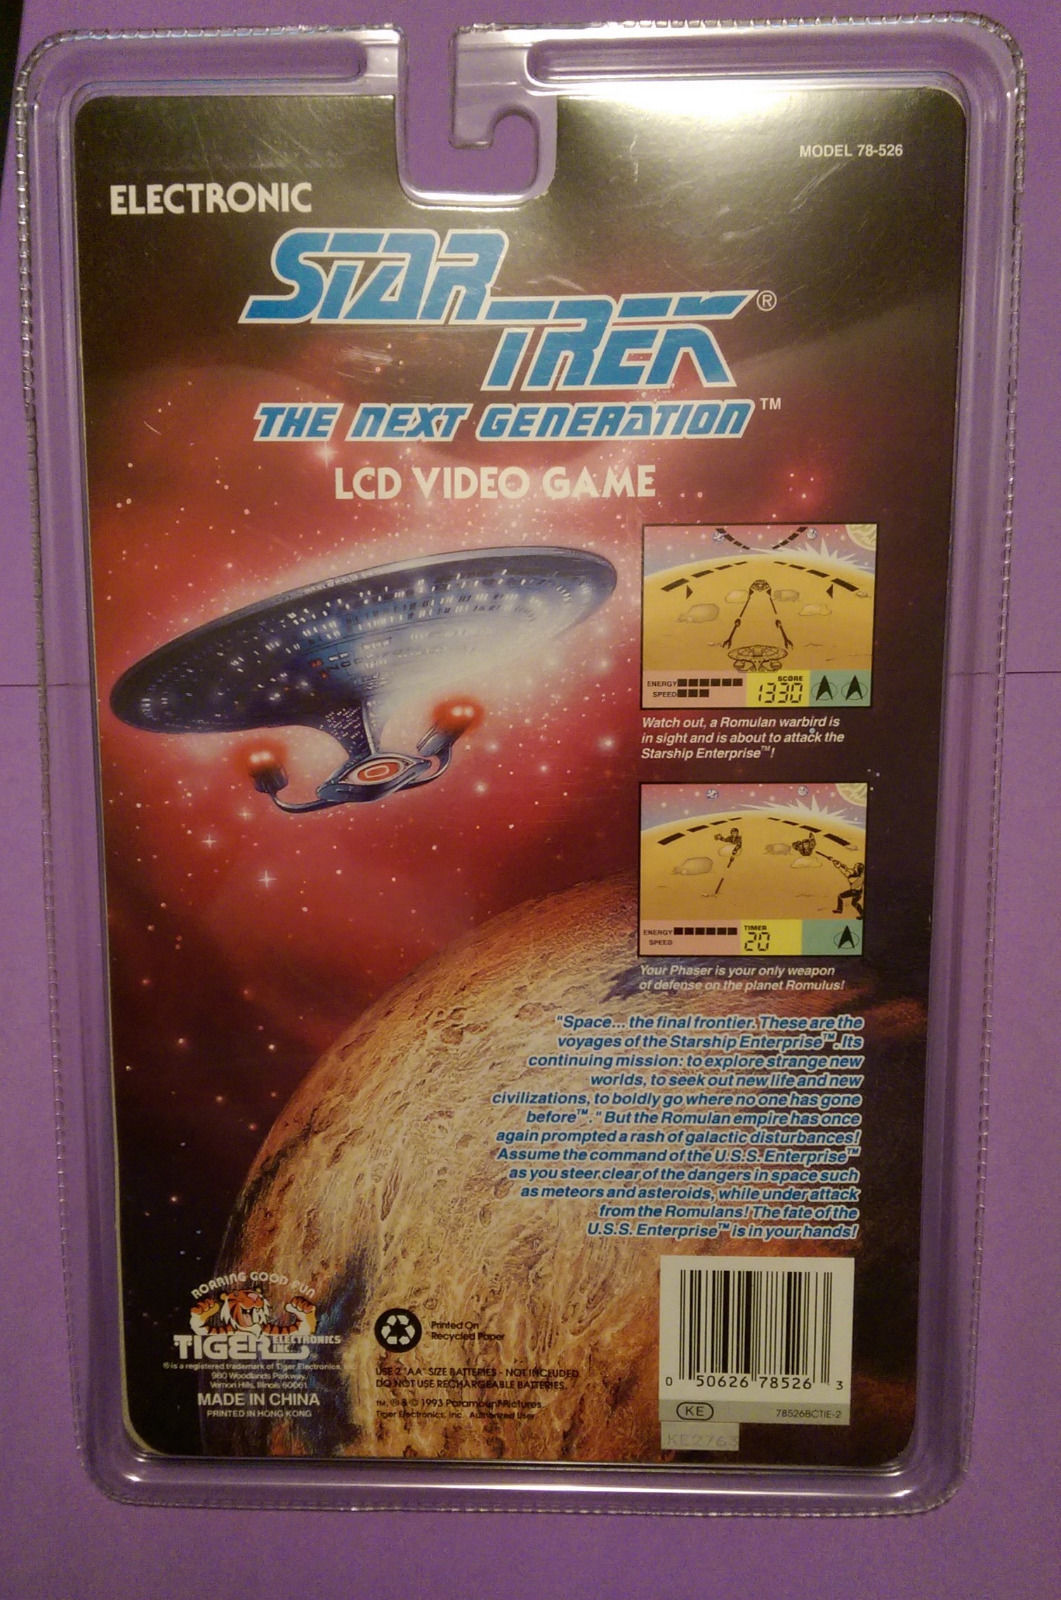 1993 STAR TREK NEXT GENERATION LCD HANDHELD VIDEO GAME TIGER ELECTRONIC NEW